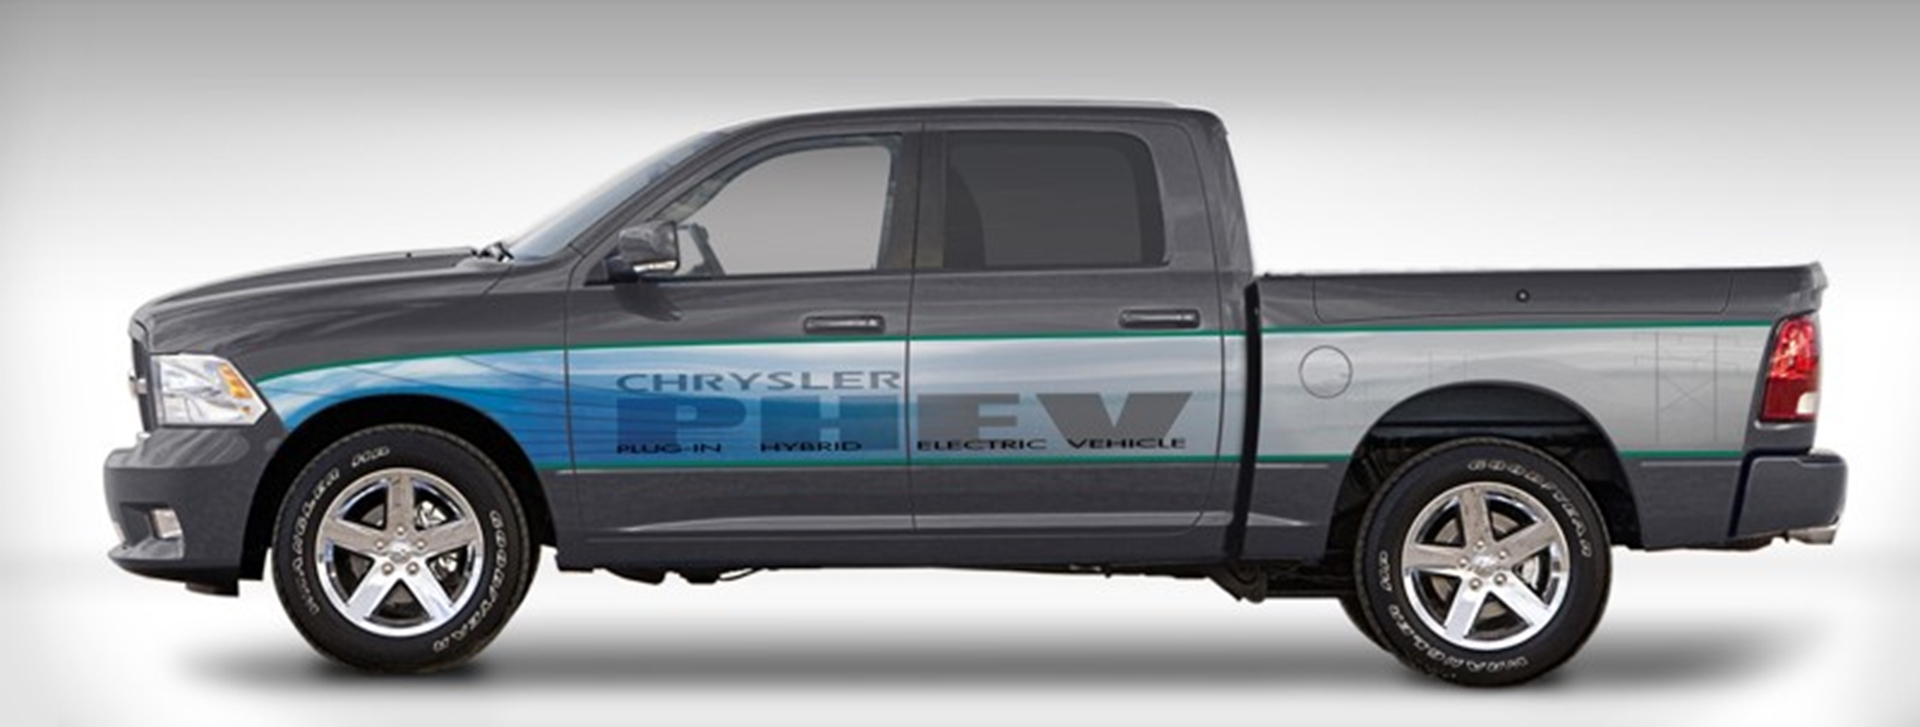 chrysler group llc providing dte energy with test fleet of 10 phev ram 1500 pickup trucks. Black Bedroom Furniture Sets. Home Design Ideas